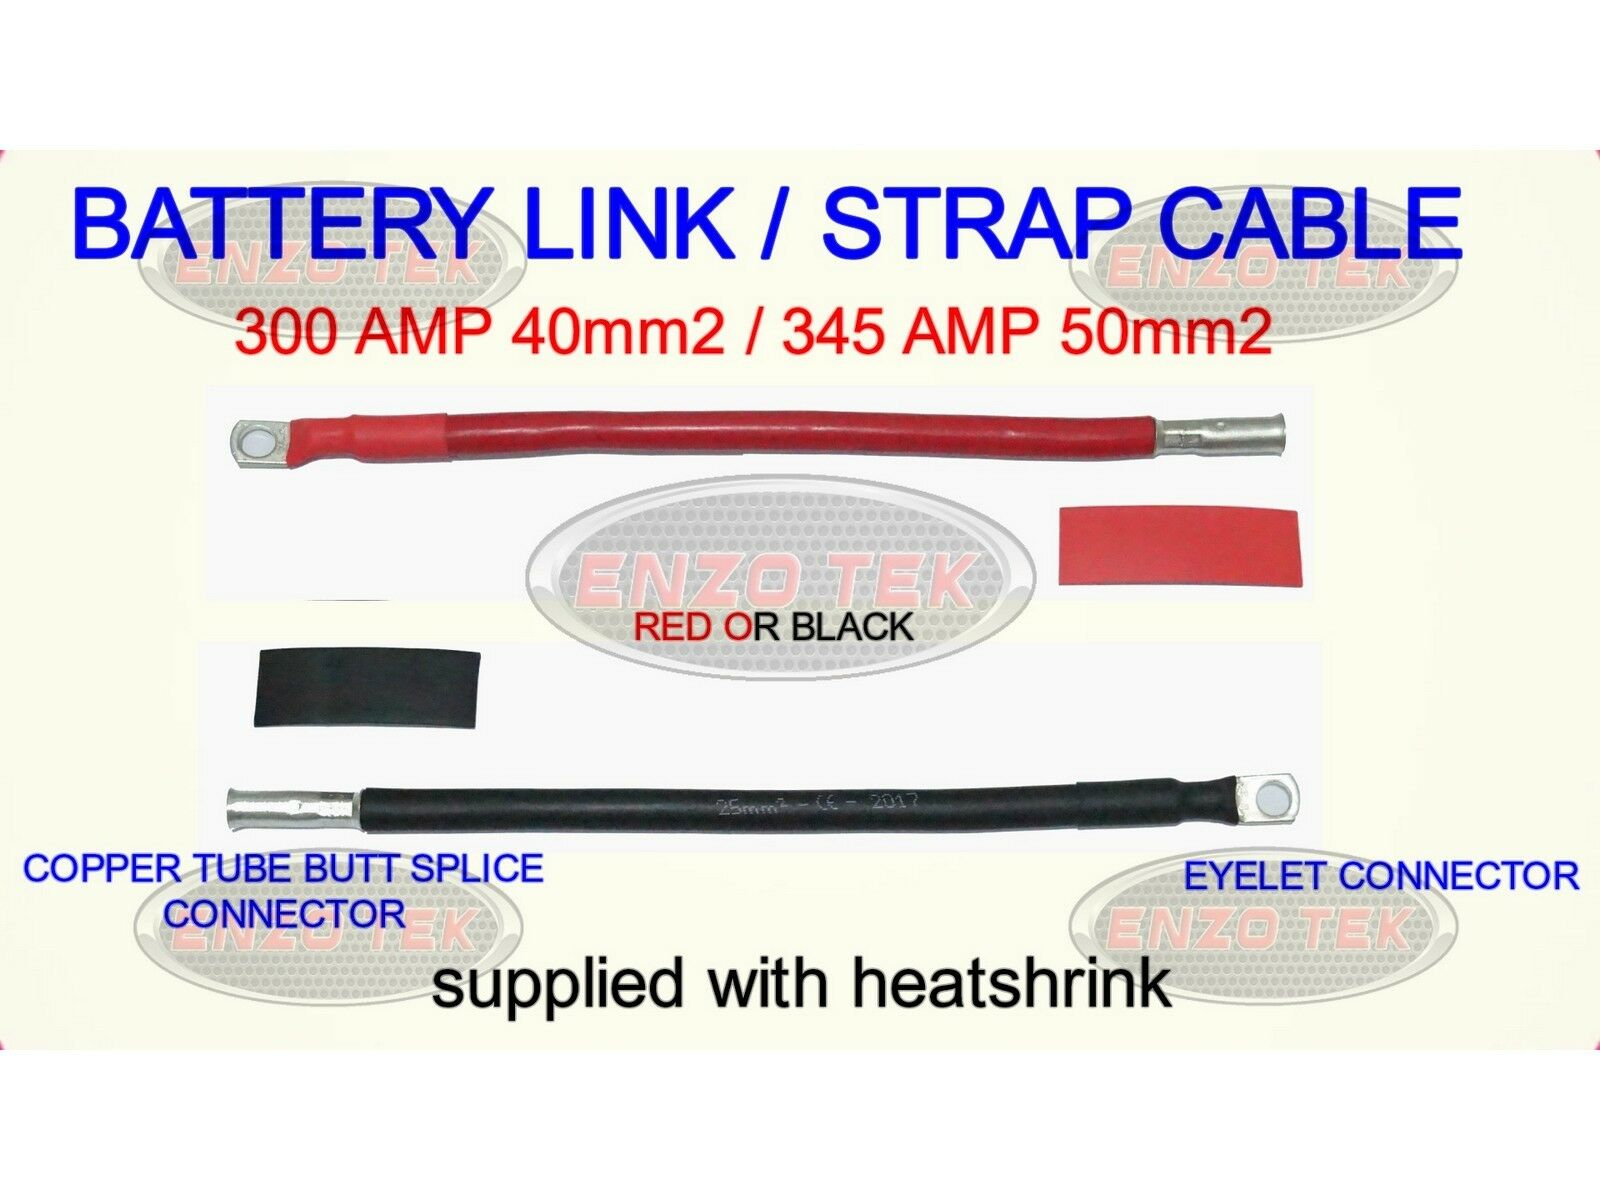 CAR VAN HGV BATTERY LEAD LINK CABLE EARTH NEGATIVE POSITIVE RED CABLE WIRE STRAP